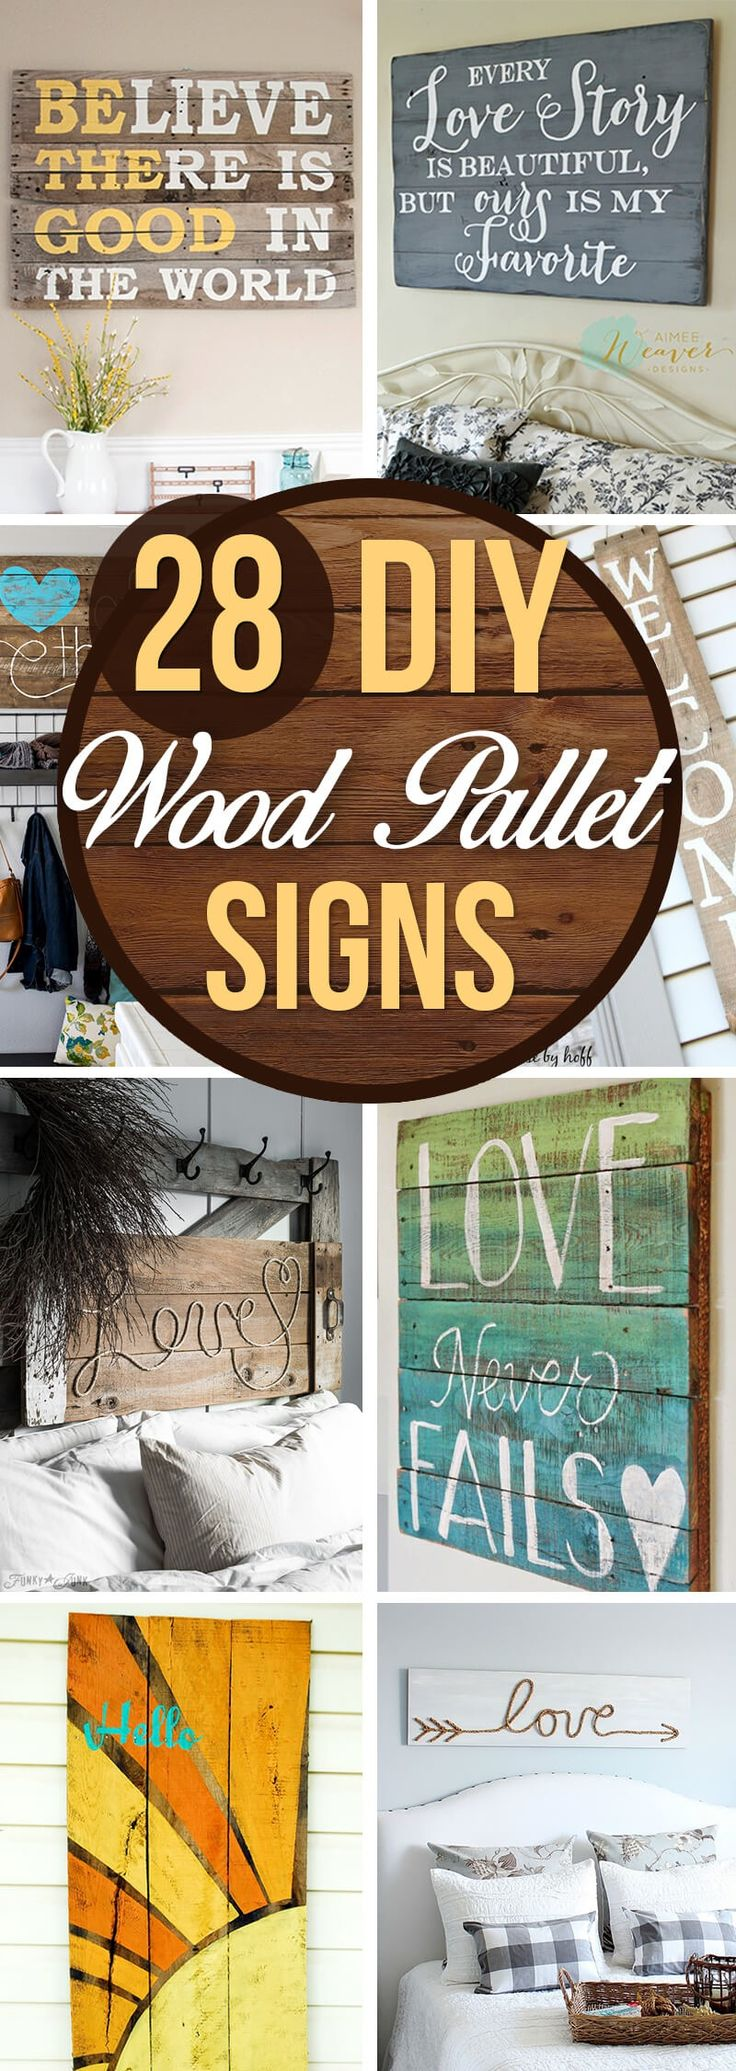 Making your own art is the easiest way to add a touch of your unique personality to your home. If you want to give your living space a rustic or vintage feel, try one of these 30 awesome DIY pallet signs. This list has DIY pallet sign ideas for every room in the house from the laundry room to...